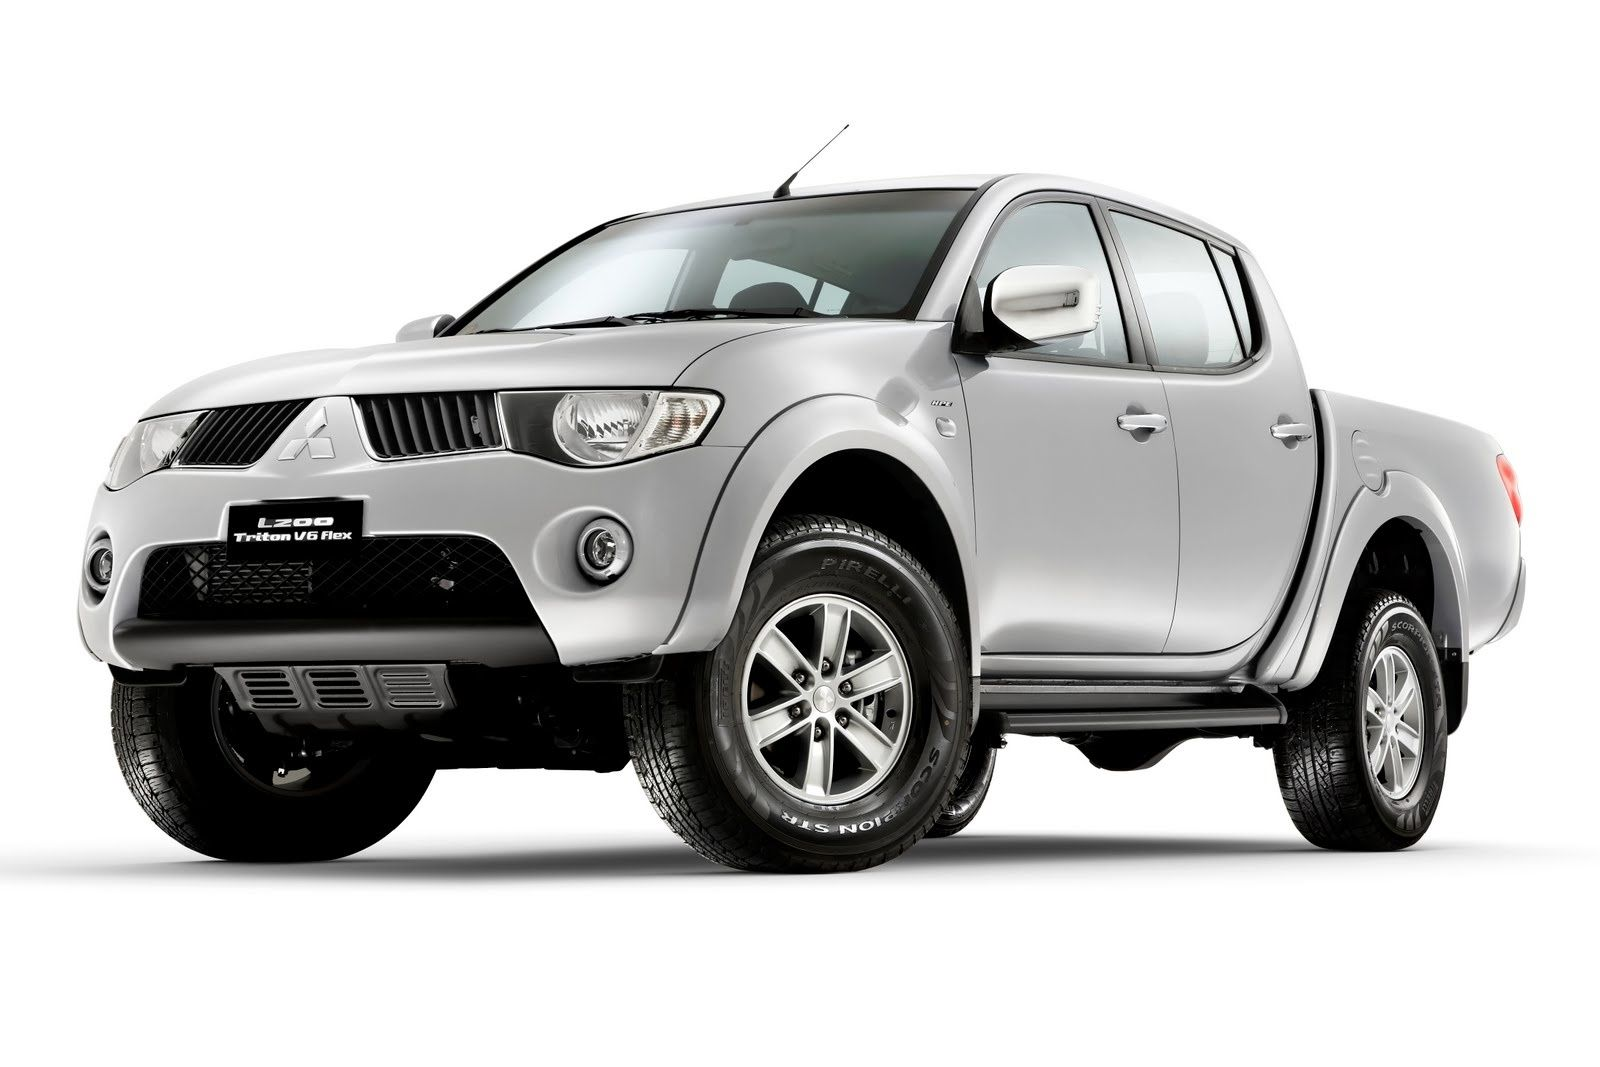 hight resolution of 2015 mitsubishi triton l200 service manual cd 2015 iso pdfthis high quality